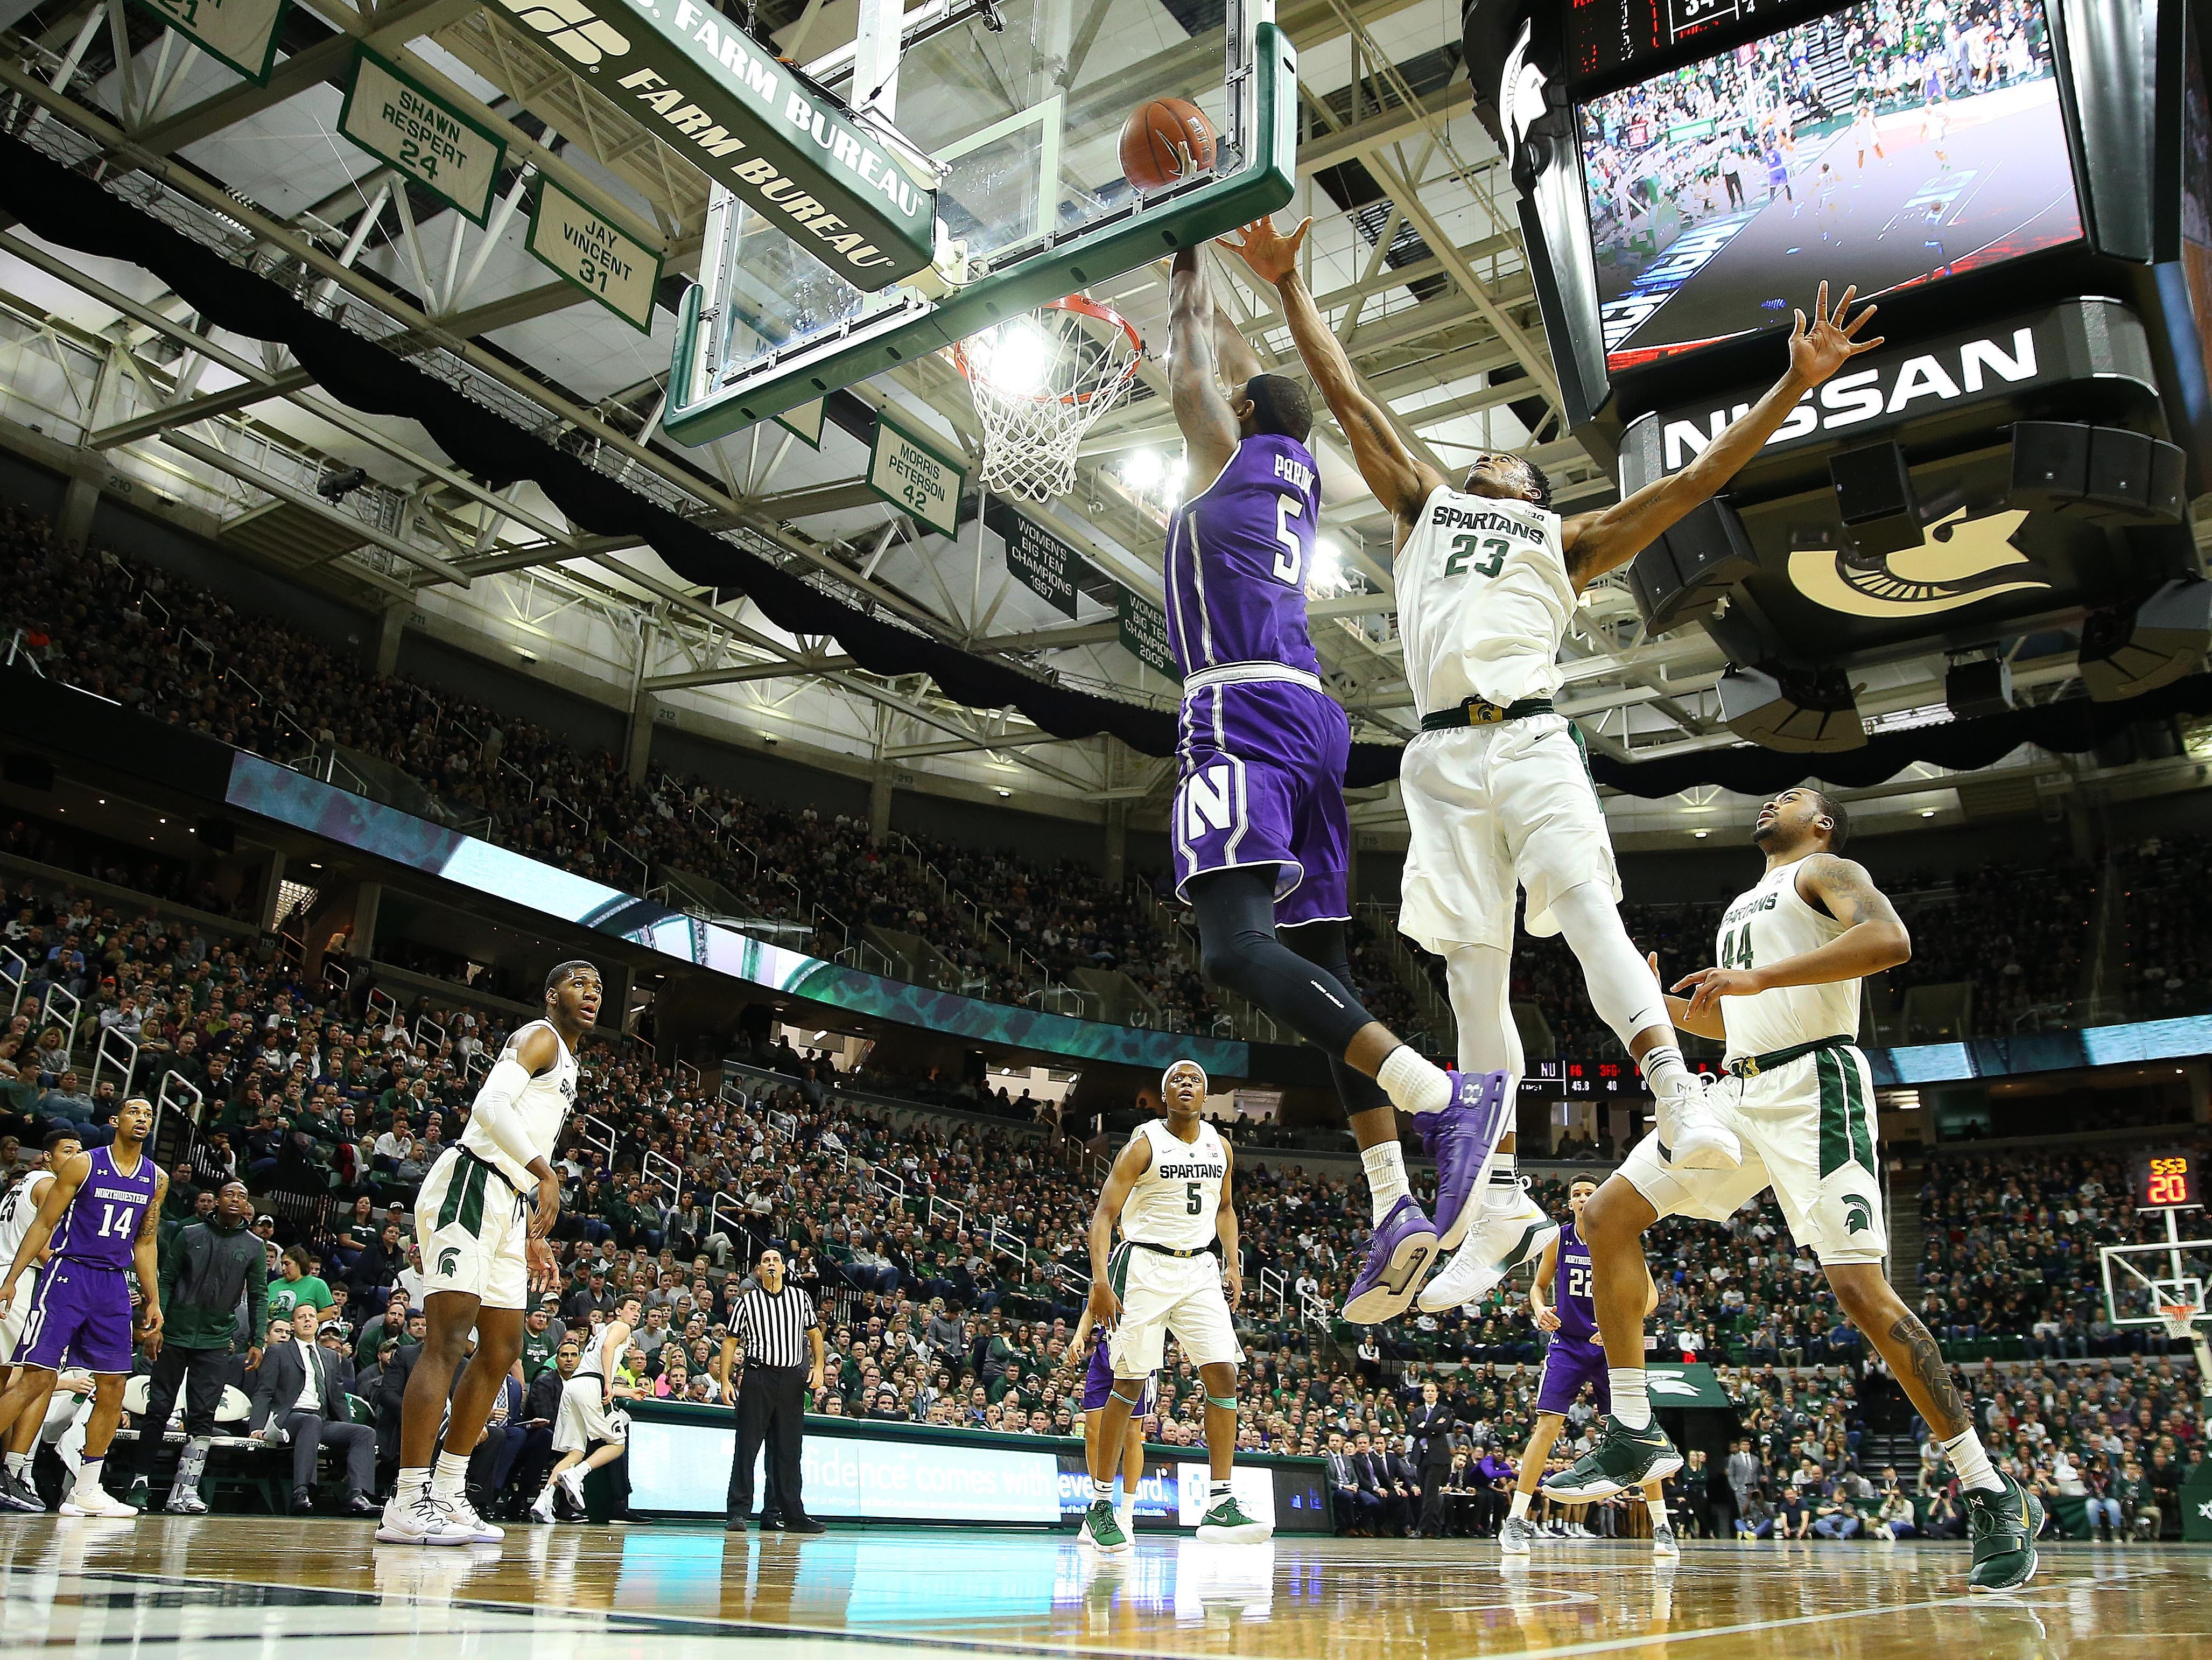 Jan 2, 2019; East Lansing, MI, USA; Michigan State Spartans forward Xavier Tillman (23) blocks the shot of Northwestern Wildcats center Dererk Pardon (5) during the first half of a game at the Breslin Center. Mandatory Credit: Mike Carter-USA TODAY Sports